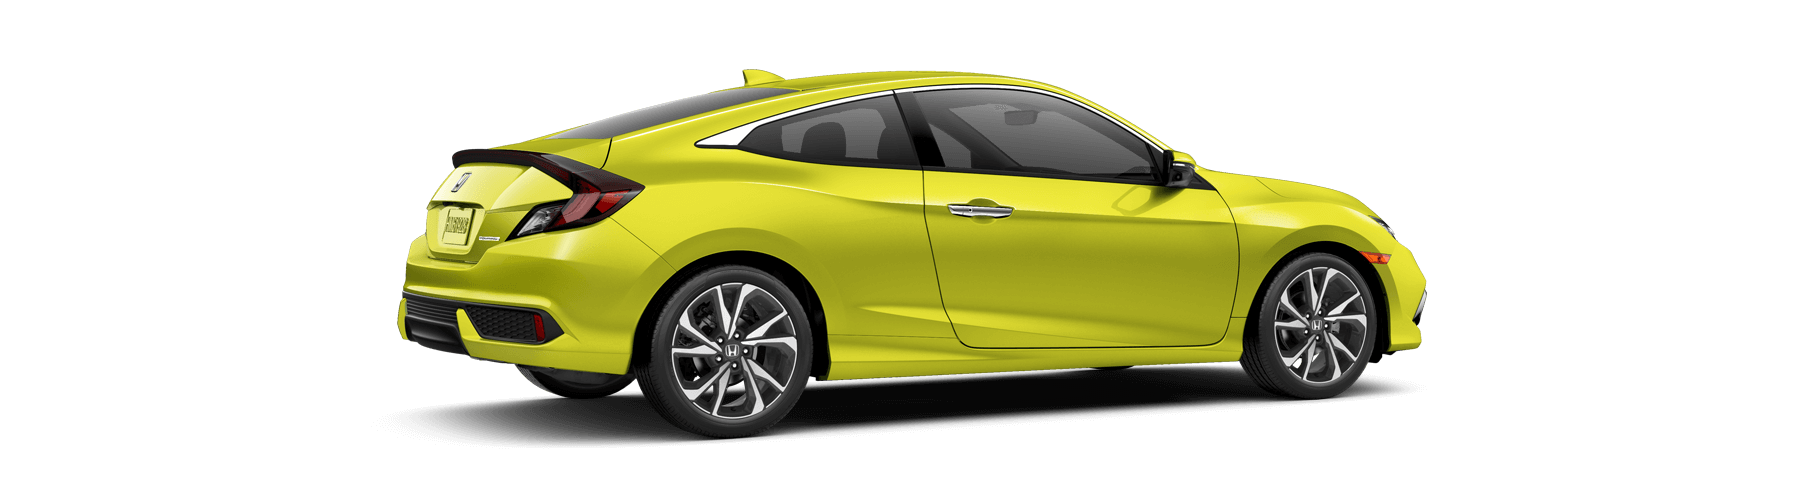 2019 Honda Civic Coupe Rear Angle